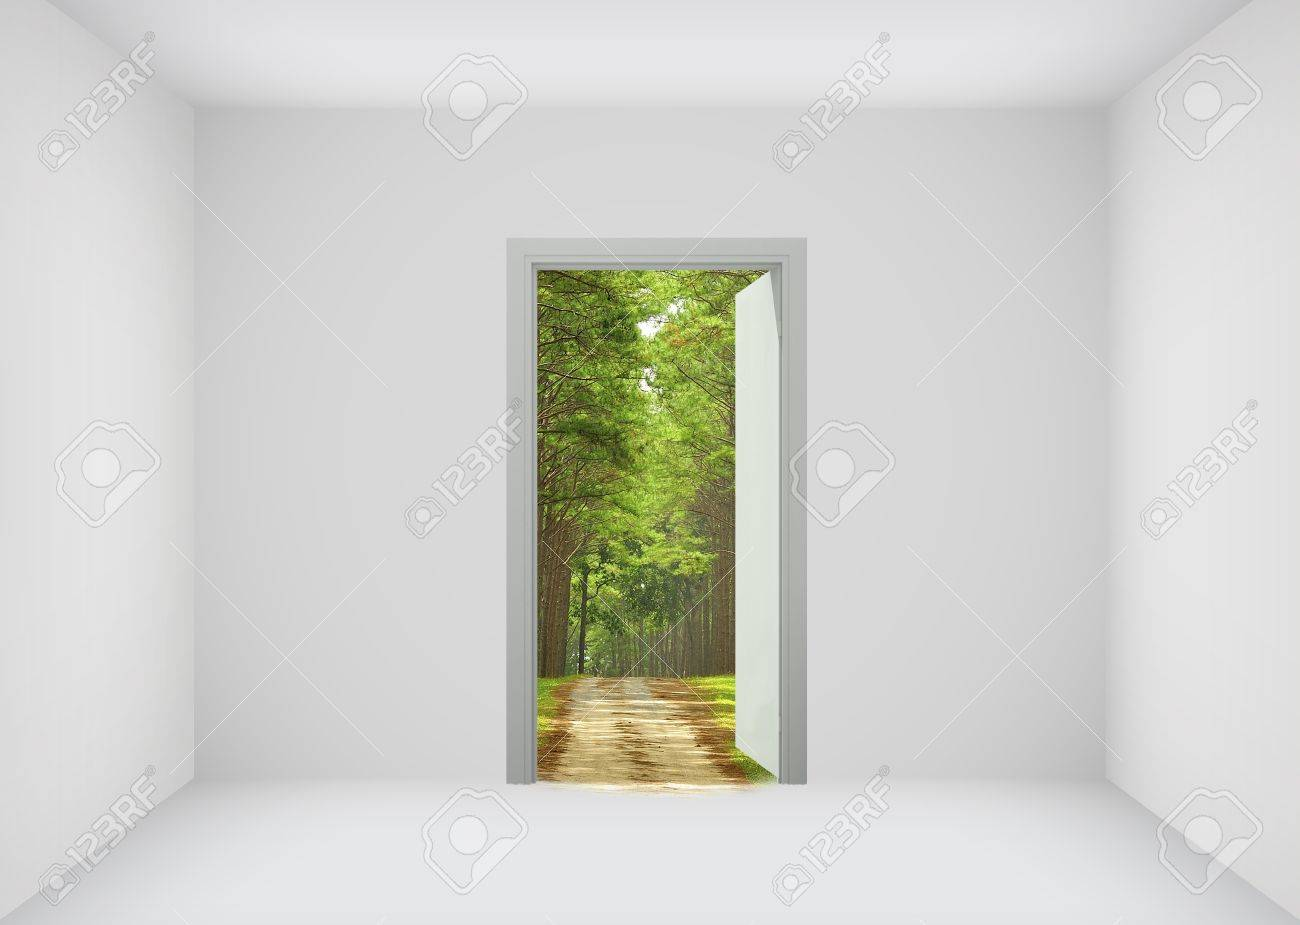 Open door to the new world for environmental and business idea concept Stock Photo - & Open Door To The New World For Environmental And Business Idea ... Pezcame.Com